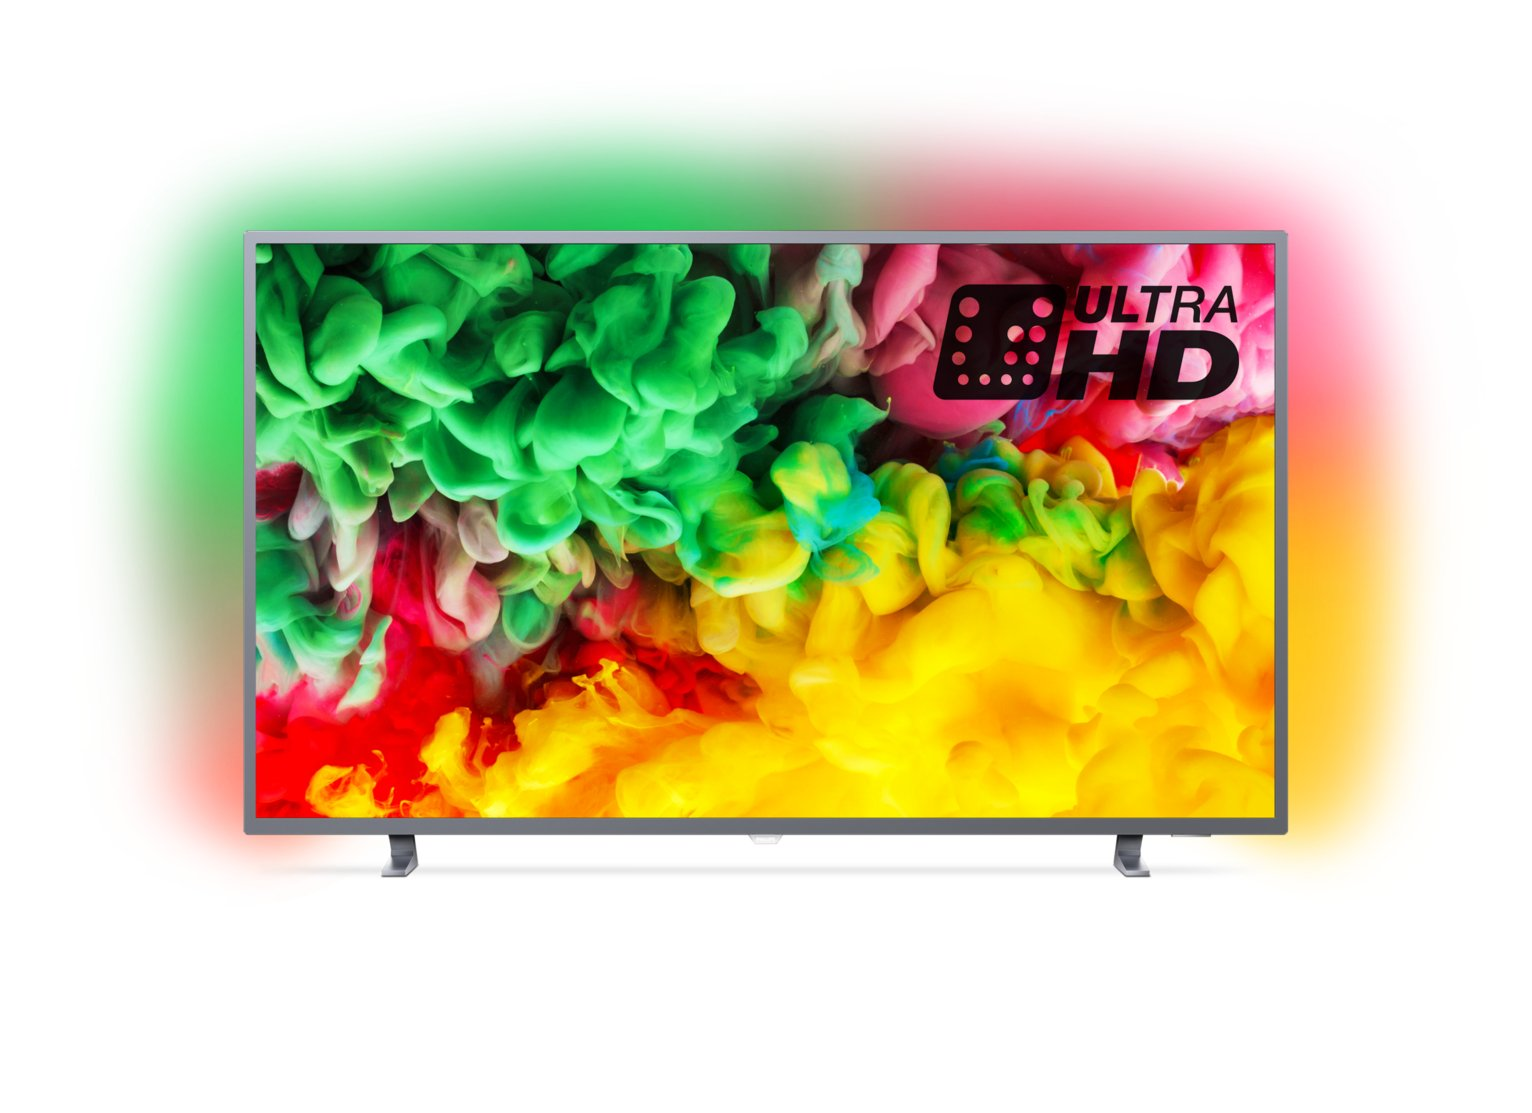 Philips 55PUS6703 55 Inch Smart UHD Amiblight TV with HDR